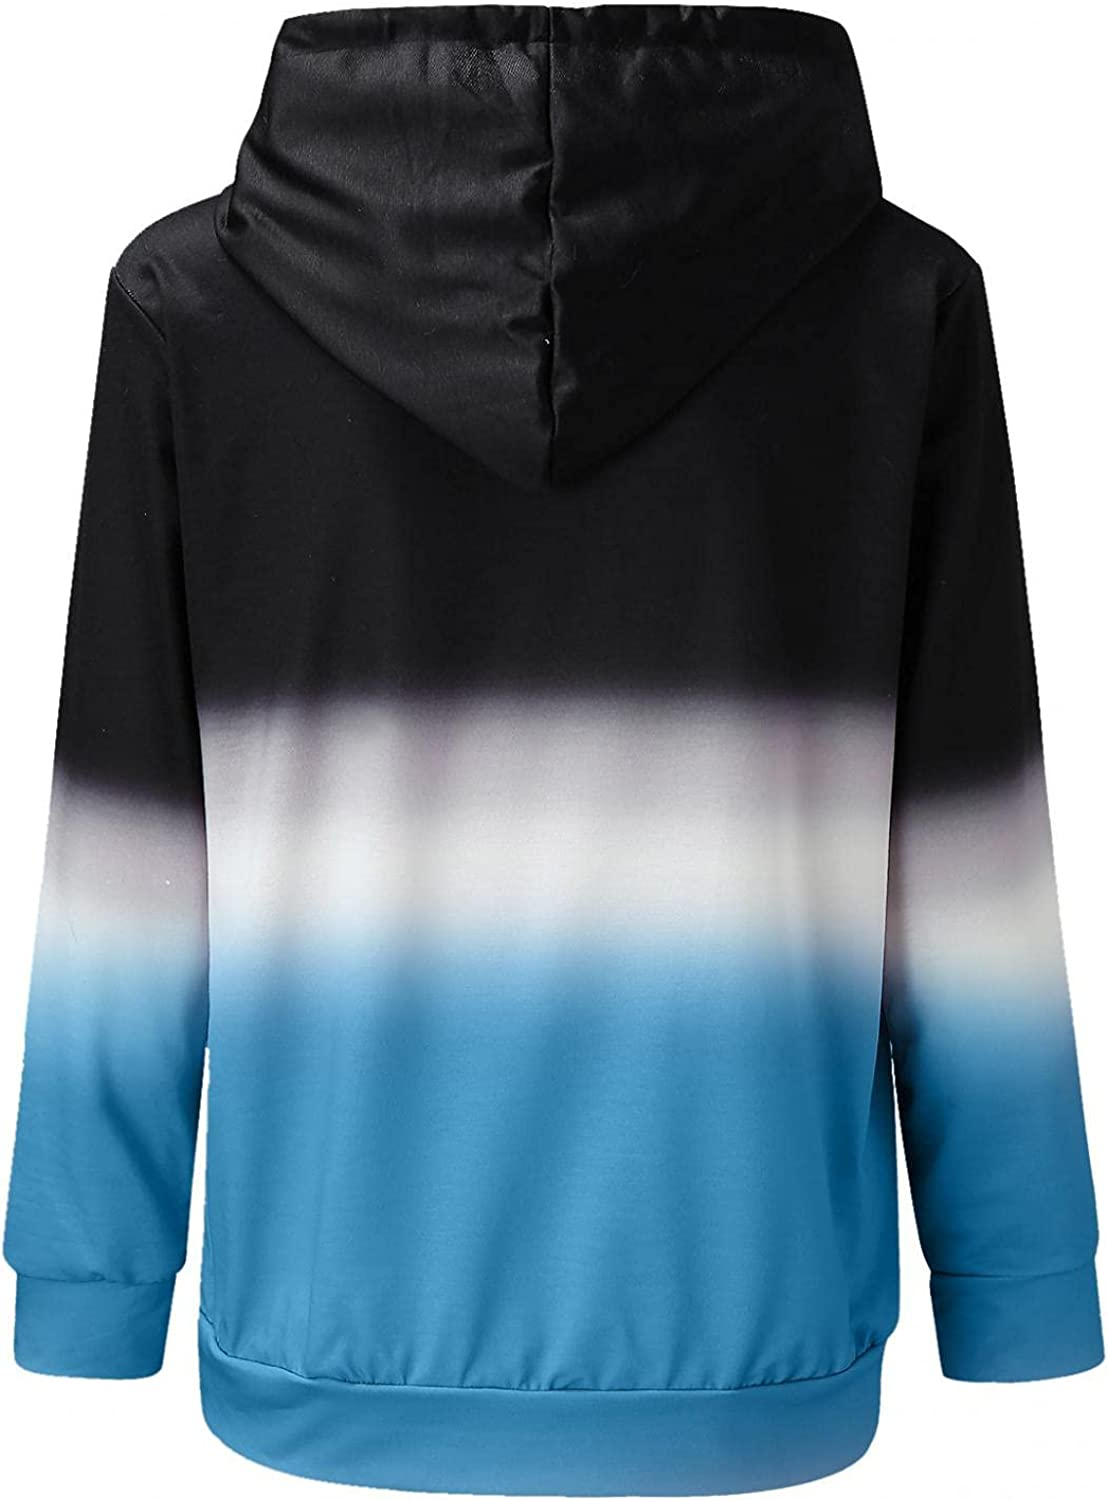 NEEKEY Hoodie for Womens Casual Tunic Tops Long Sleeve Tie Dye Pockets Sweatshirts Shirts Pullover Blouse with Drawstring